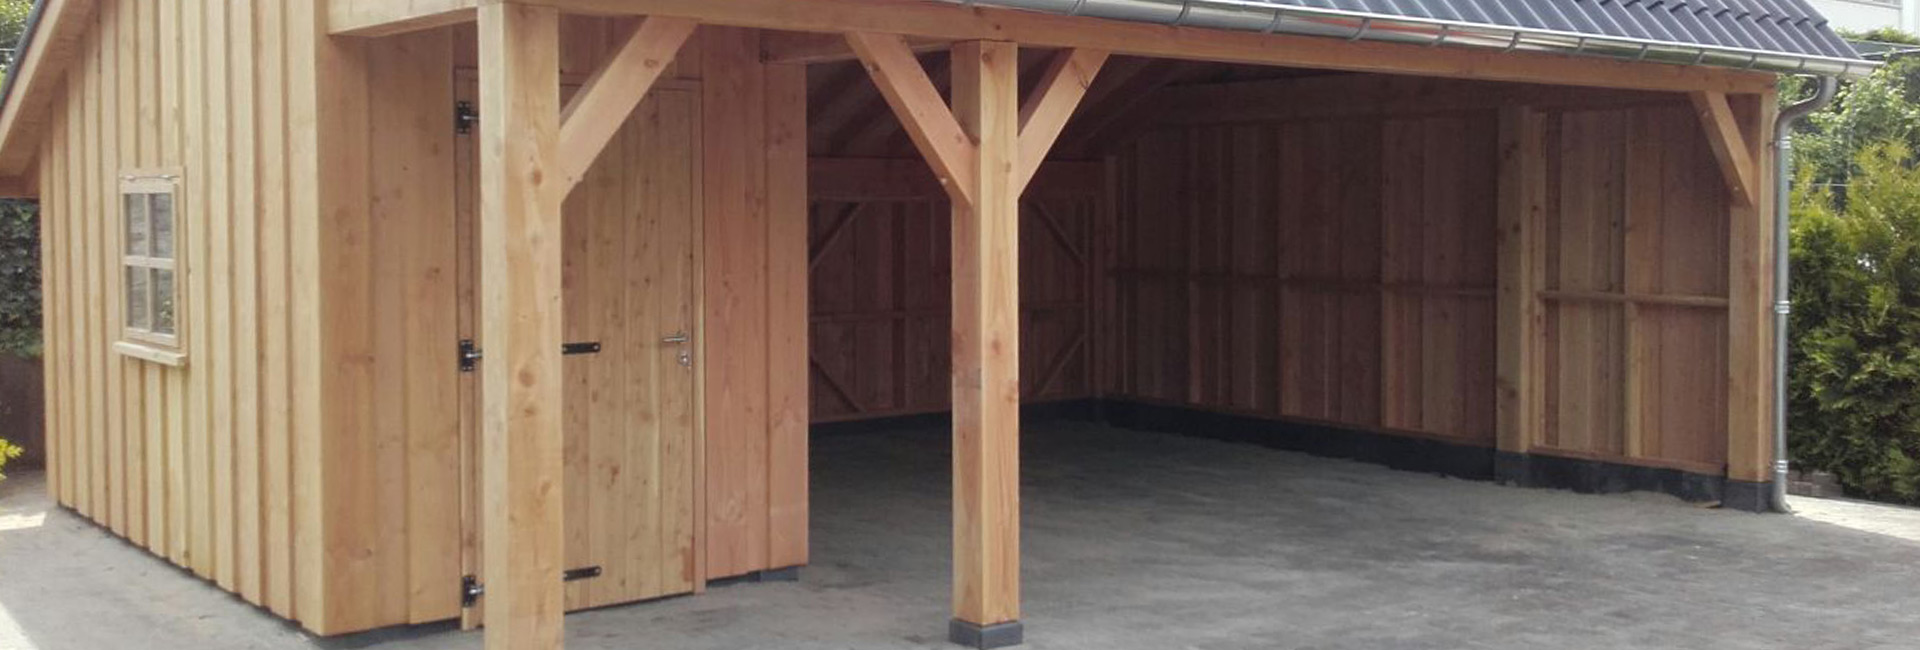 https://www.noesk.com/sites/default/files/2017-06/NOESK_Houten_Carport_1.jpg